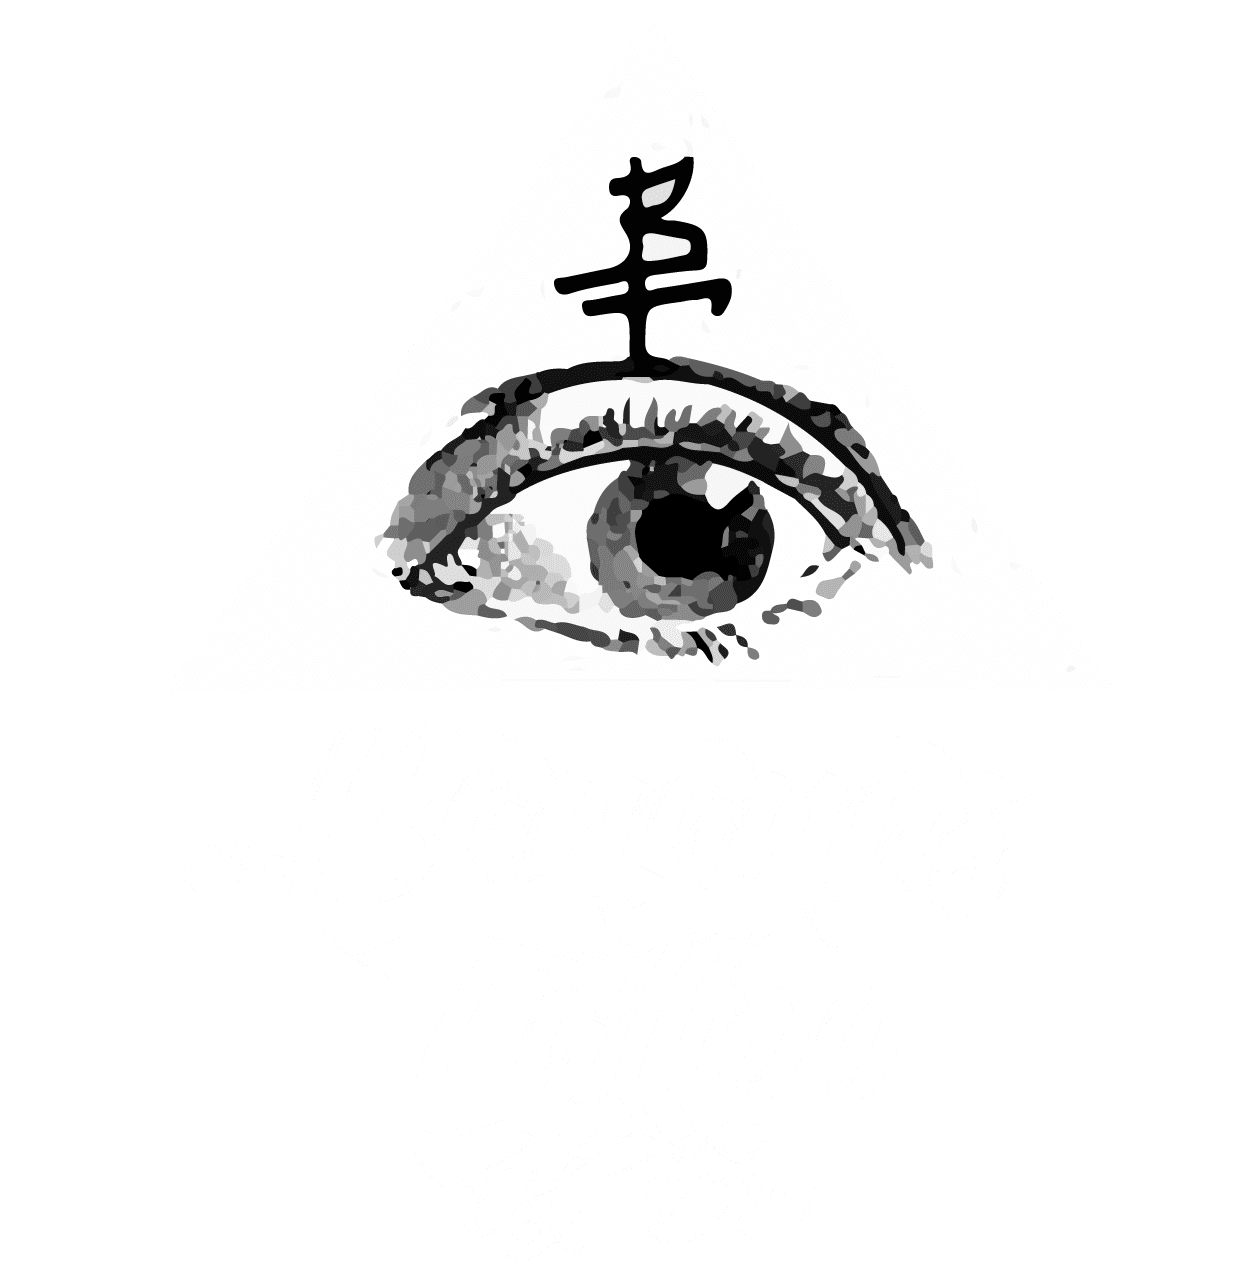 Bananas Tattoo logo